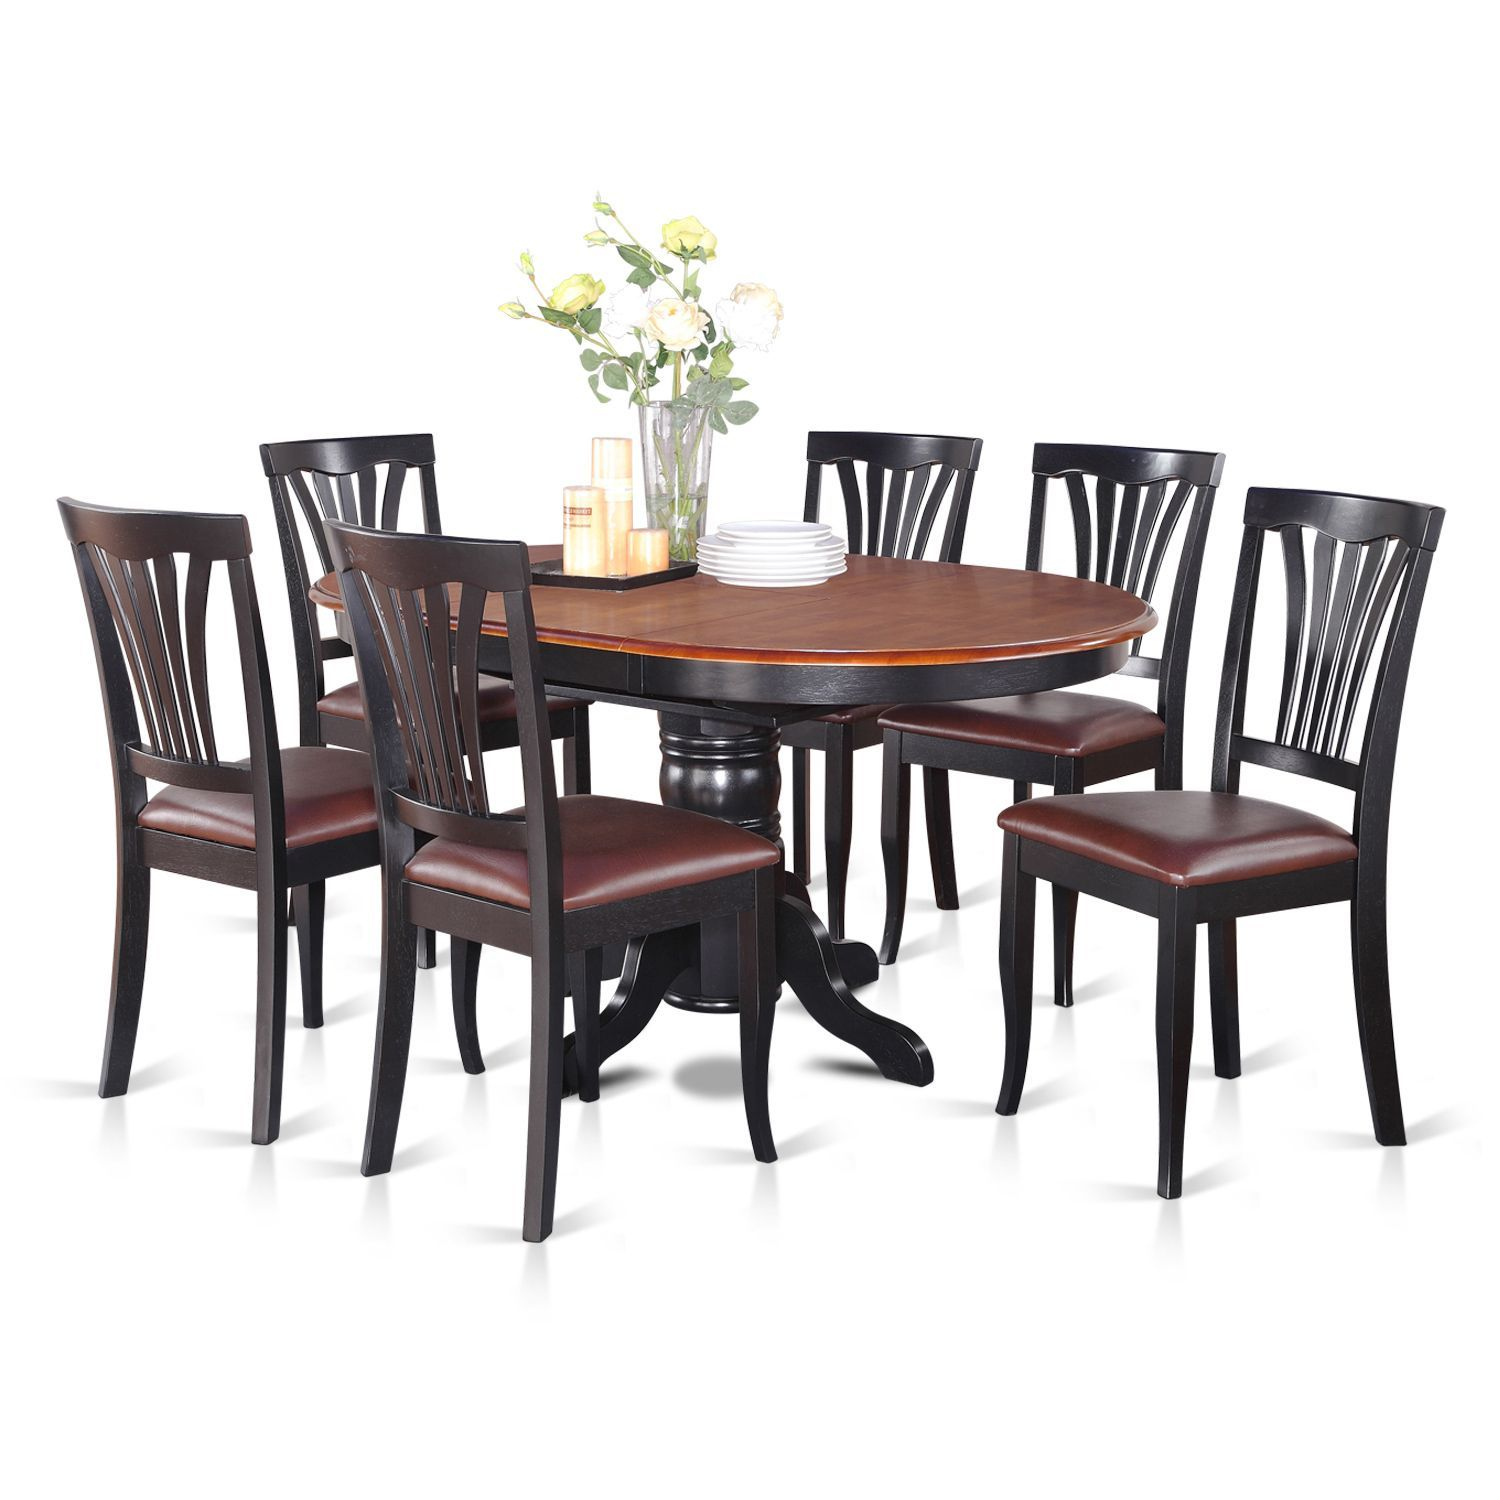 Overstock Com Online Shopping Bedding Furniture Electronics Jewelry Clothing More Oval Table Dining Round Wooden Dining Table Wooden Dining Chairs